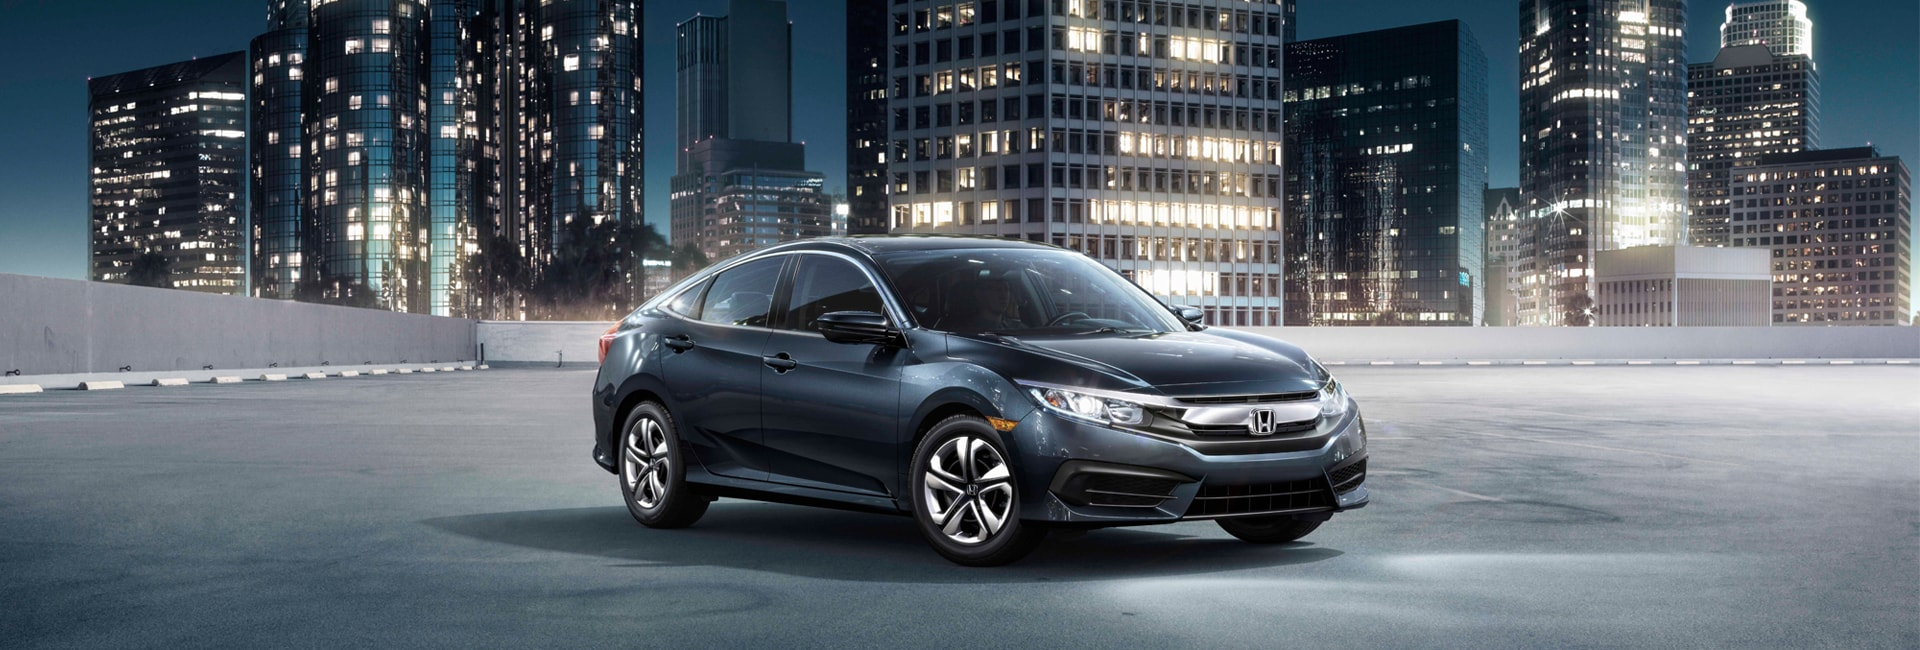 2017 Honda Civic Exterior Features